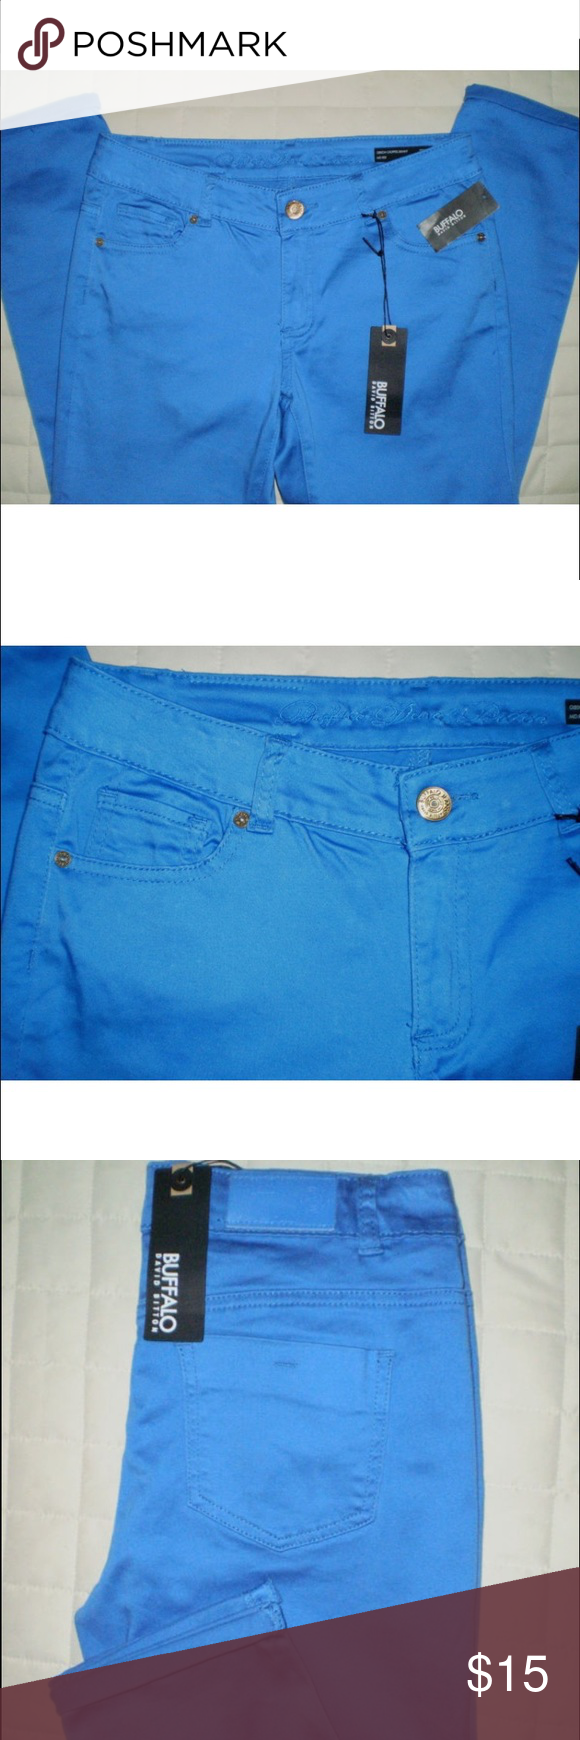 David Bitton Buffalo Jeans Bright blue David Bitton buffalo jeans. Size 26. 98% cotton 2% spandex. Has some stretch to them but not as much as a jegging. Last photograph is the accurate color. Mid rise. Worn once. Beautiful pants! Although there are tags in the first few photos I had to remove them when I decided to wear them. Only worn once!!! Buffalo David Bitton Jeans Ankle & Cropped